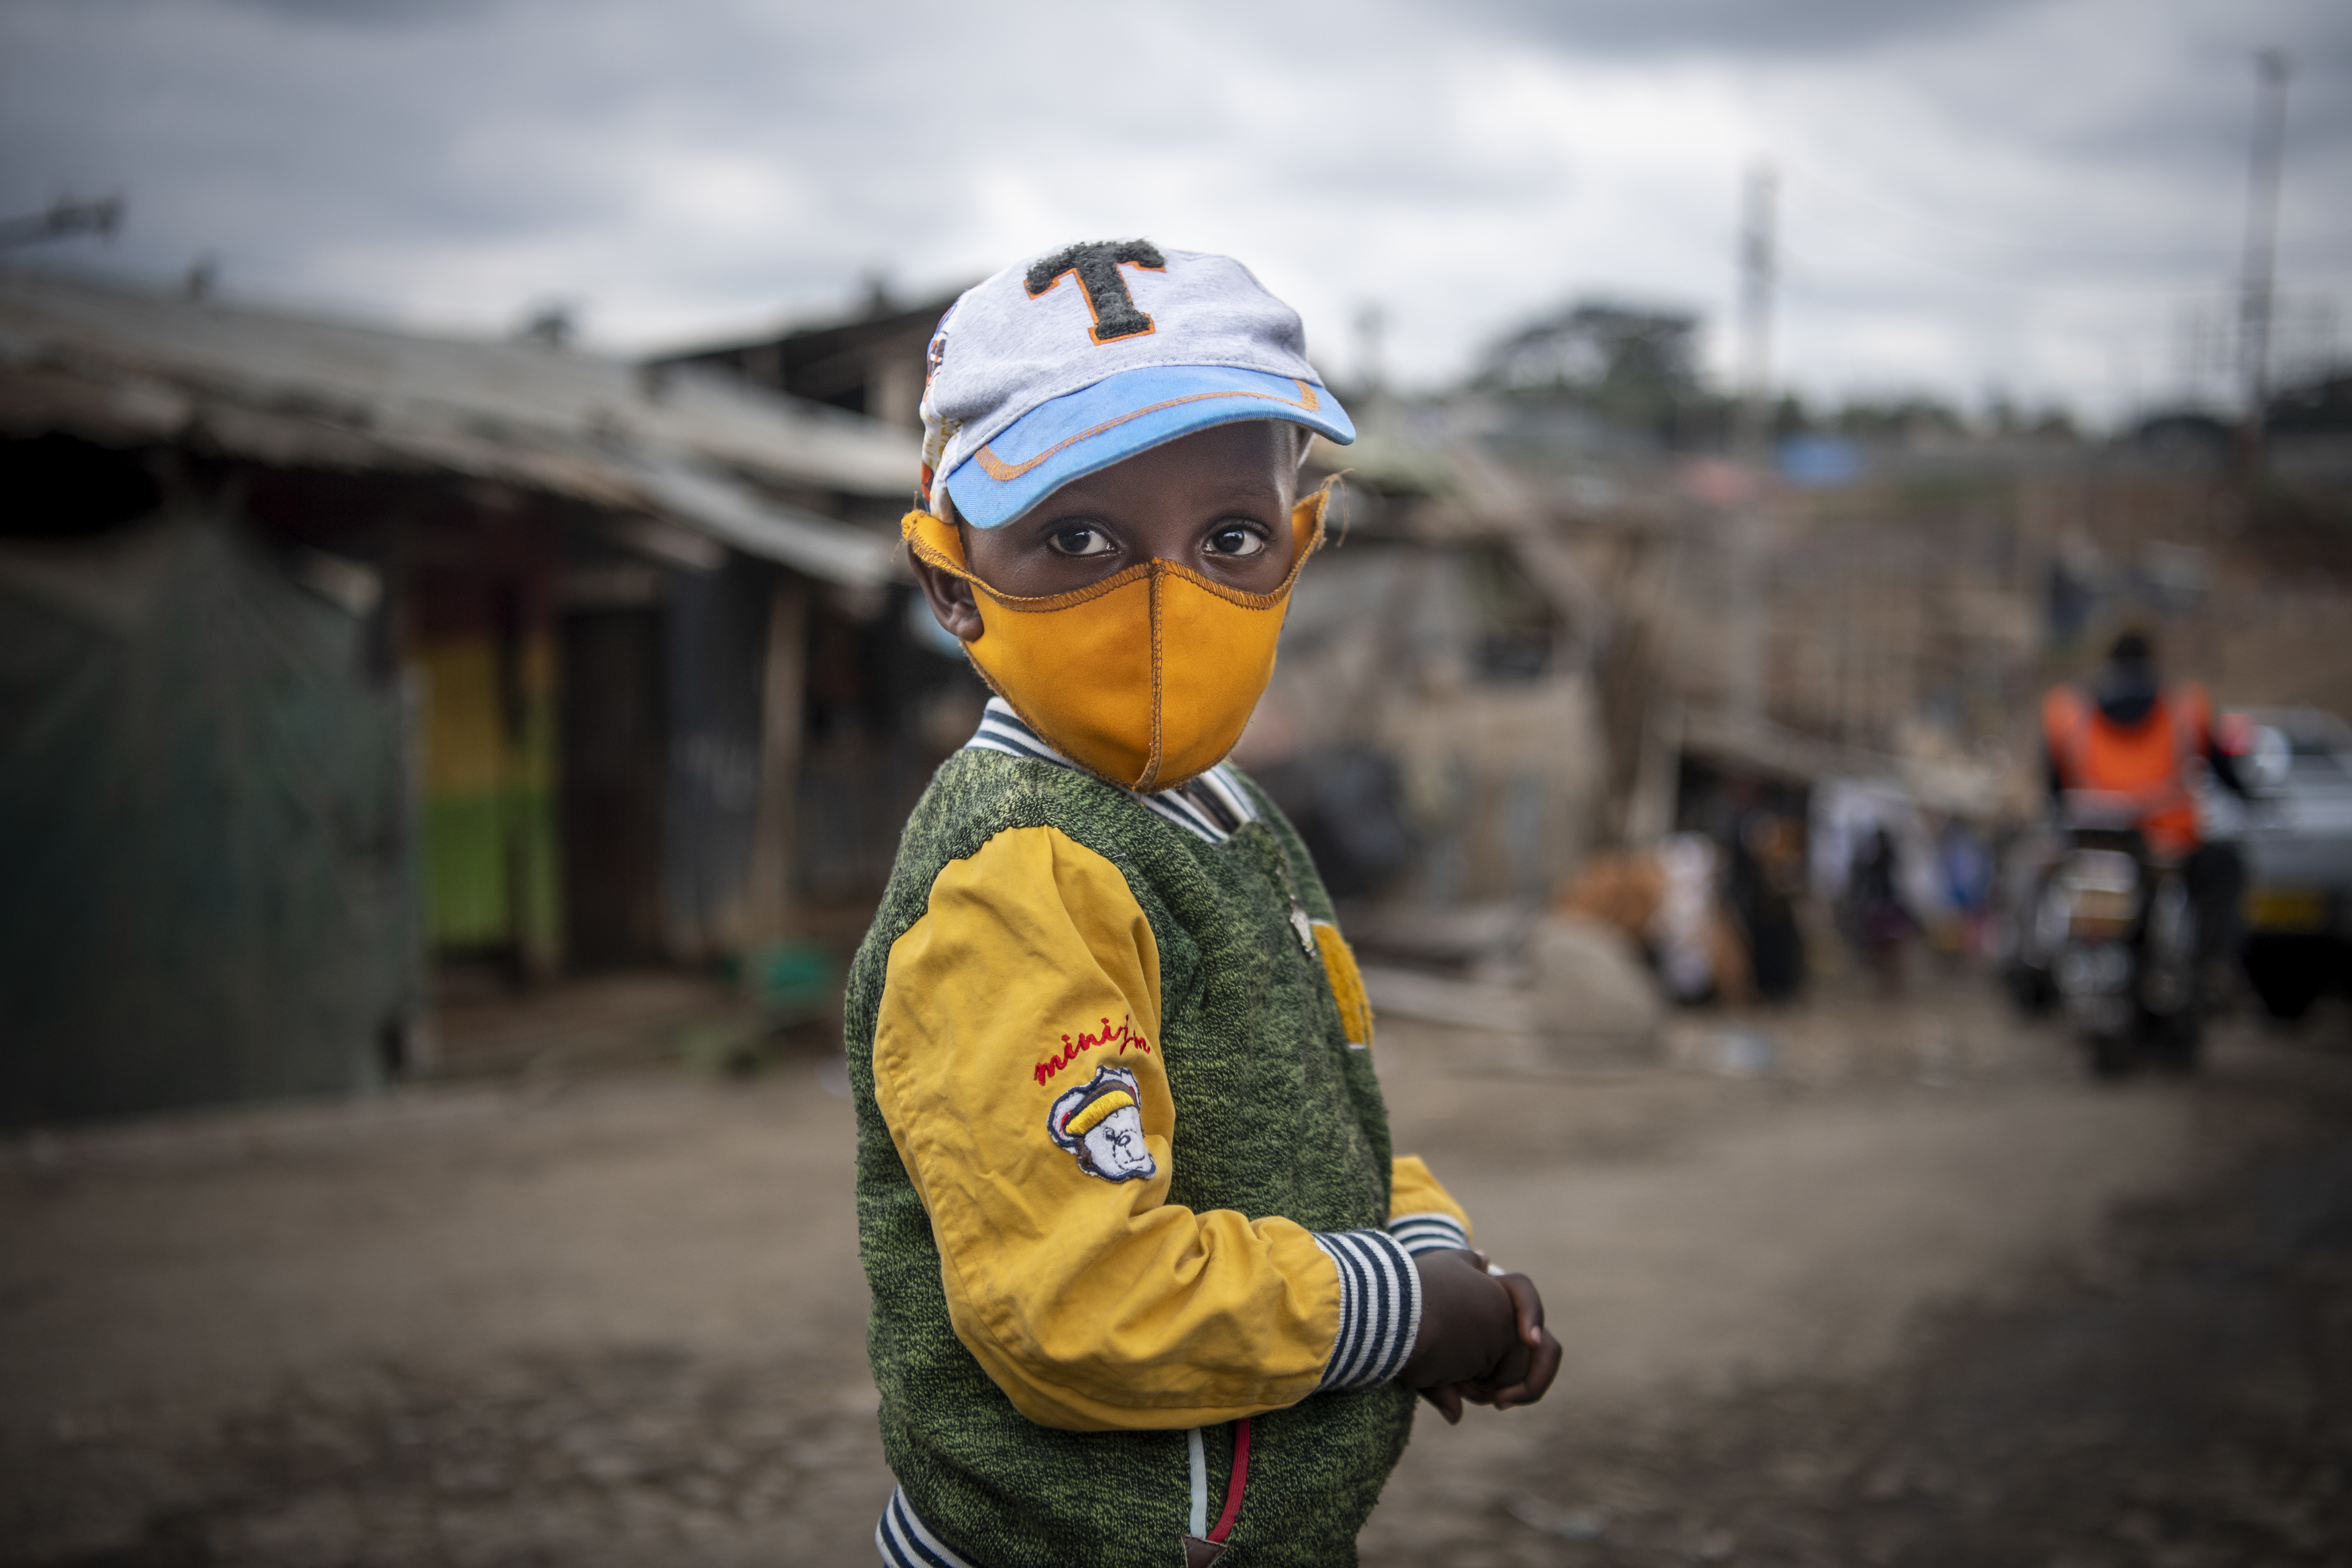 """A rare young boy wears a face mask as he walks with his mother on the streets of Mathare informal settlement. School has been declared """"null and void"""" for the year of 2020 and kids are left to fend for themselves on the streets, often needing to beg, work and steal for food.  Nairobi, Kenya."""